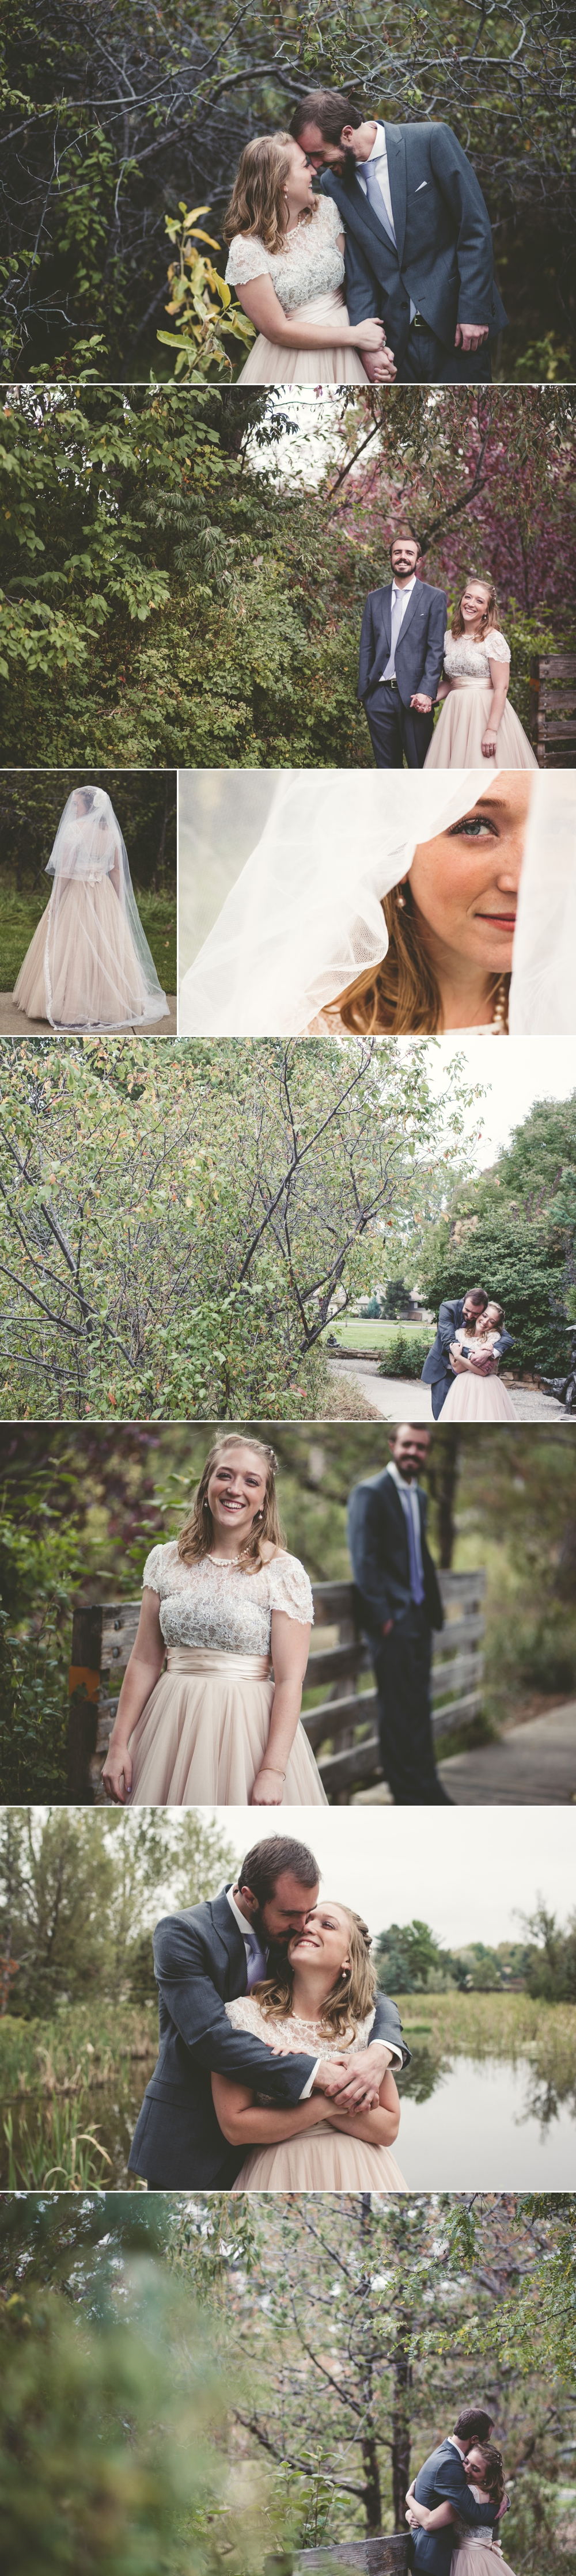 jason_domingues_photography_best_kansas_city_photographer_kc_weddings_documentary_creative_experienced_portraits_engagement_colorado_loveland_6